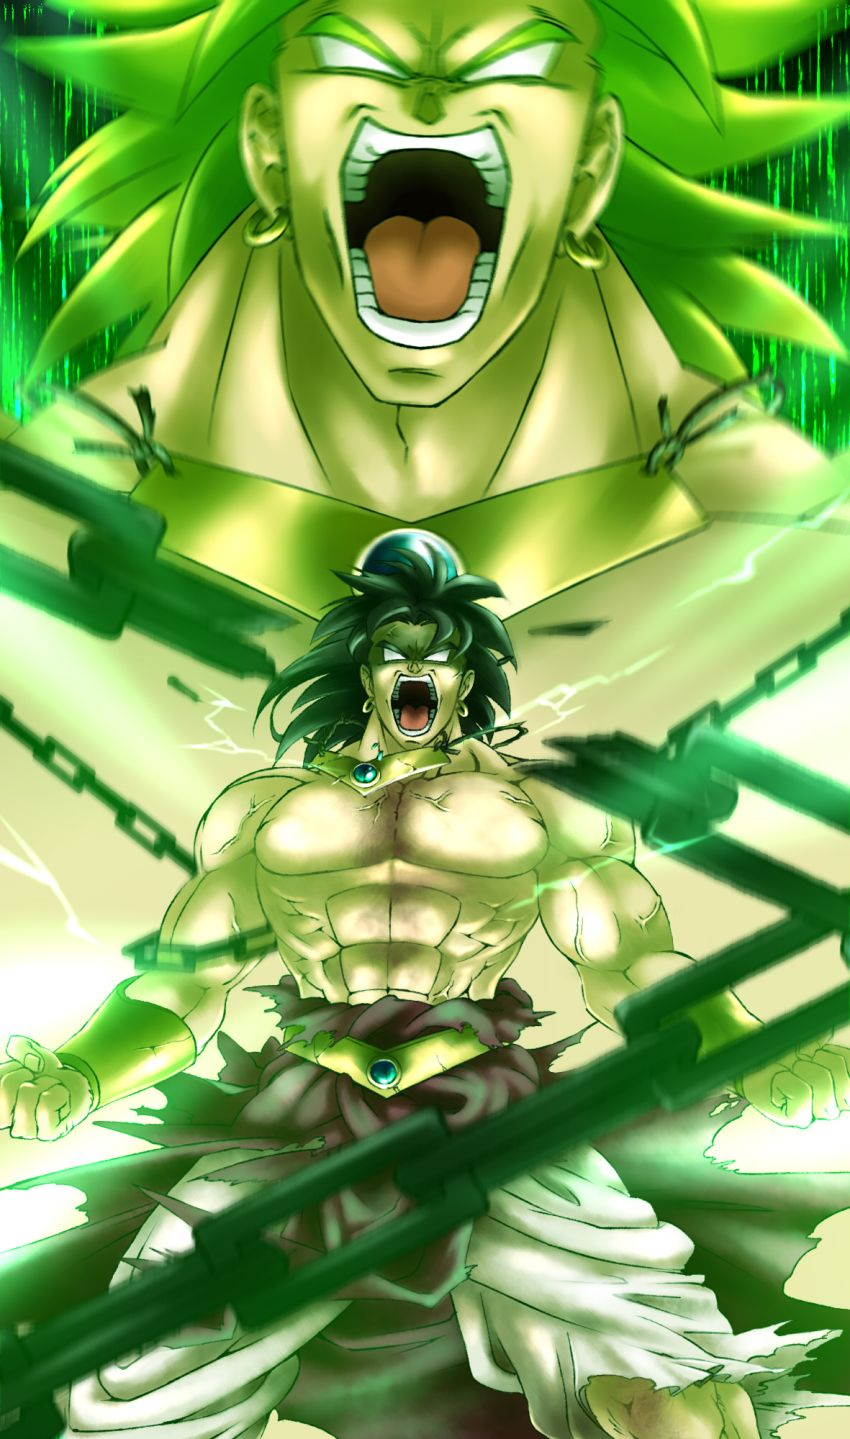 This is some pretty awesome Broly art. Broly DragonBall